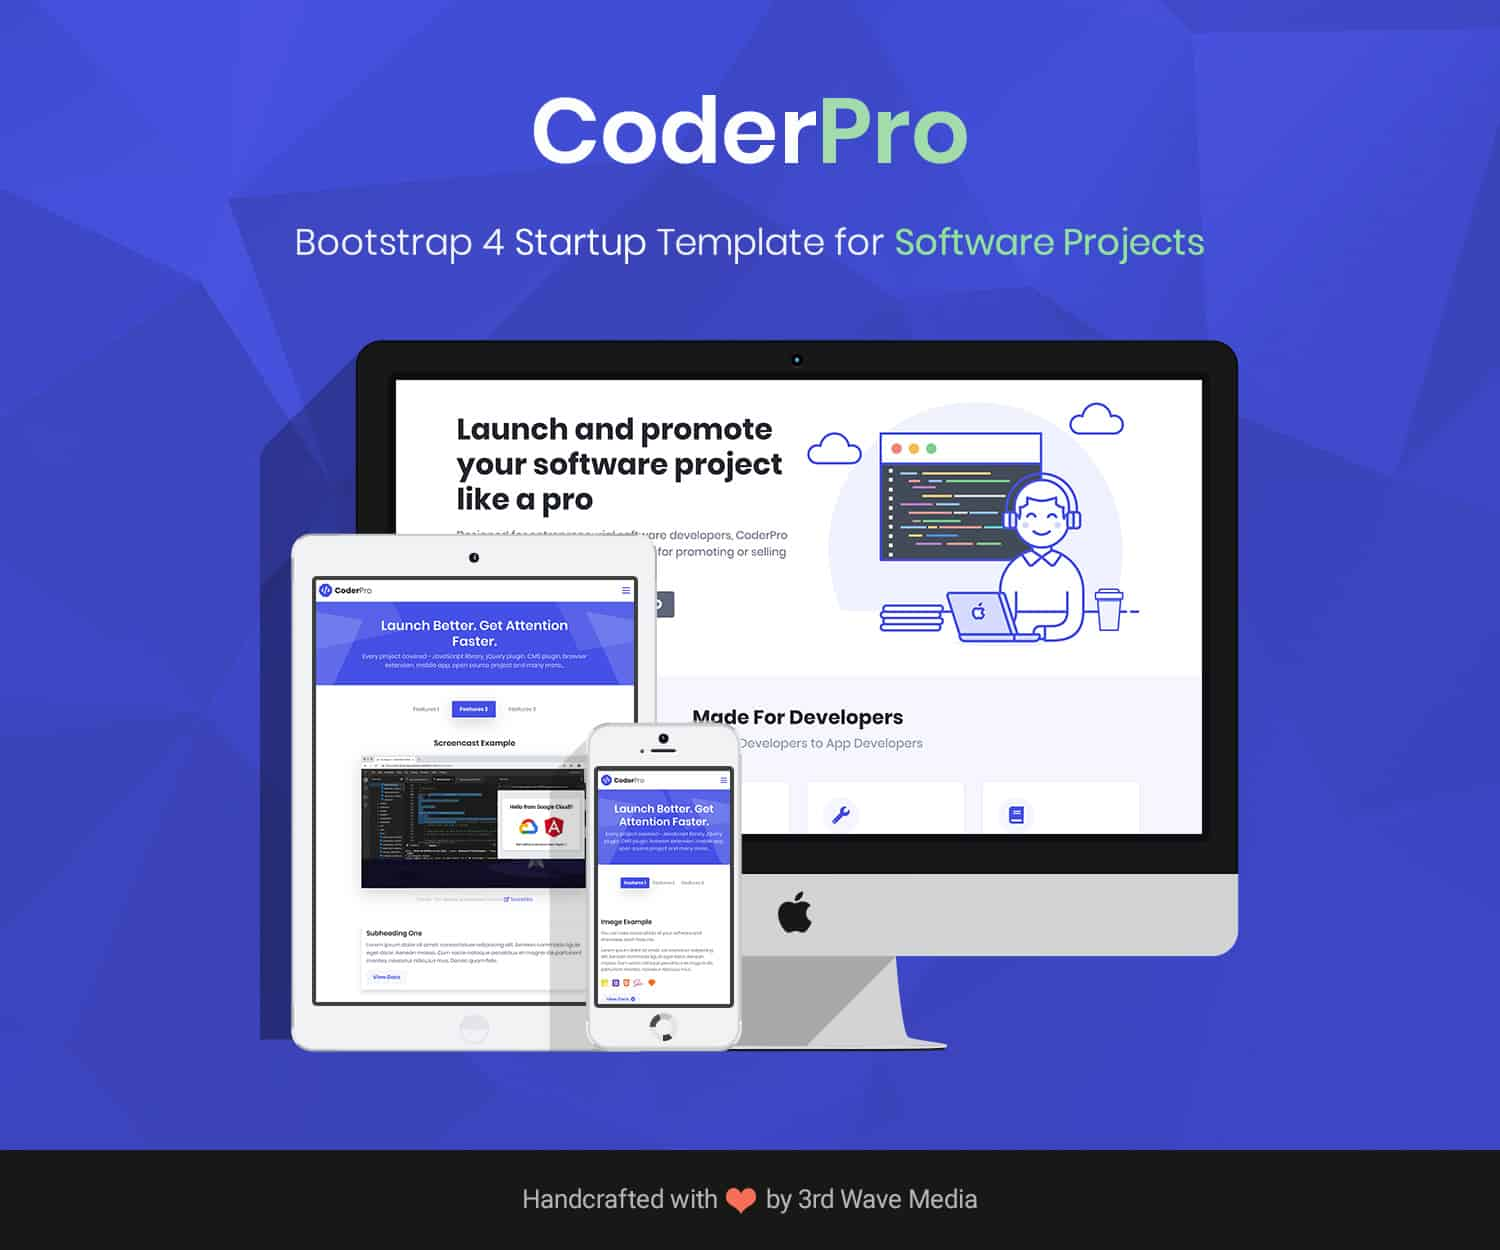 CoderPro Bootstrap Startup Template For Software Projects